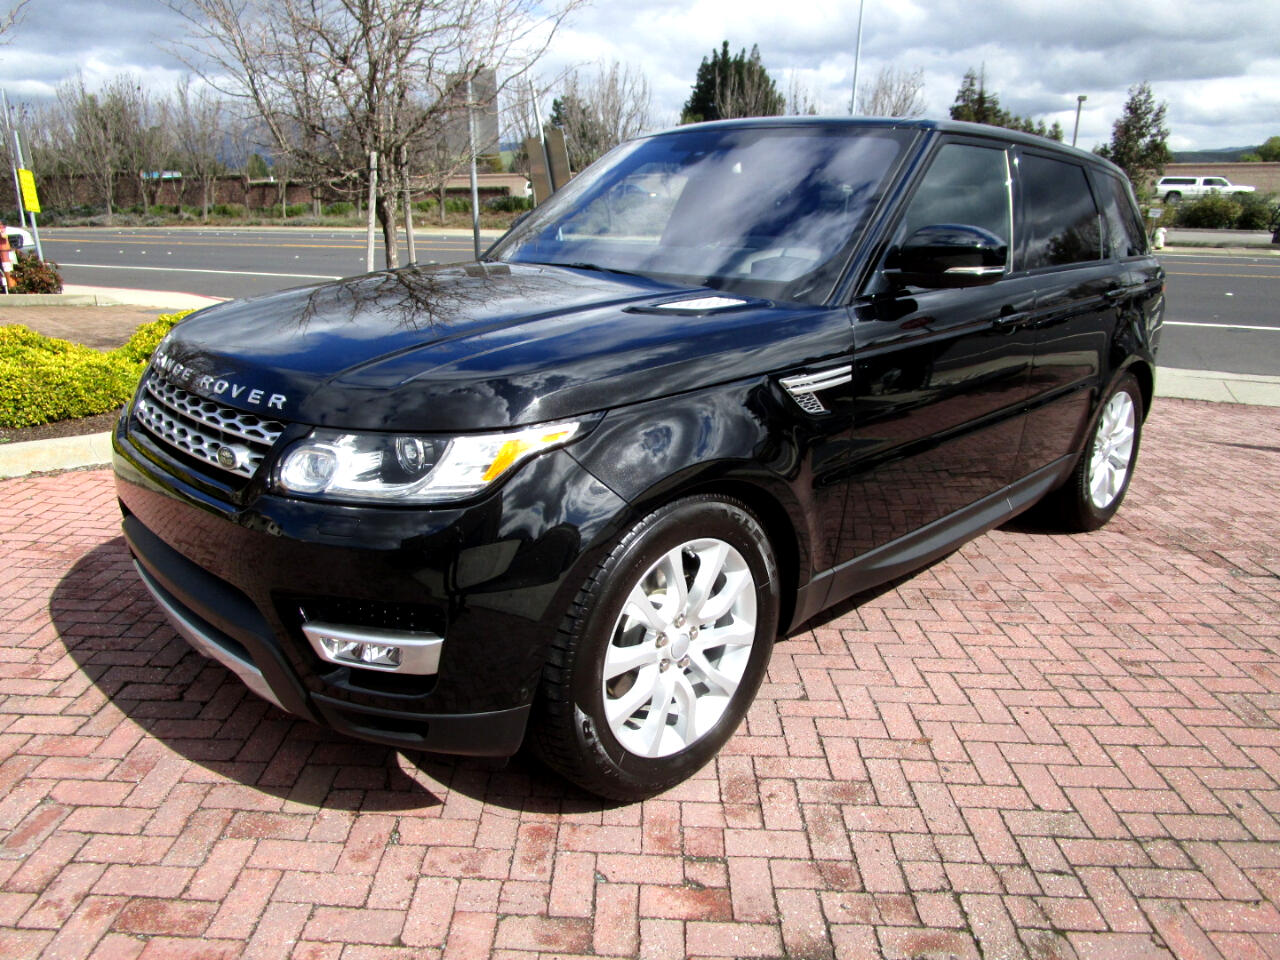 2016 Land Rover Range Rover Sport DIESEL**HEADS-UP*DRIVER ASSIST**PANO ROOF**HEAT/AC